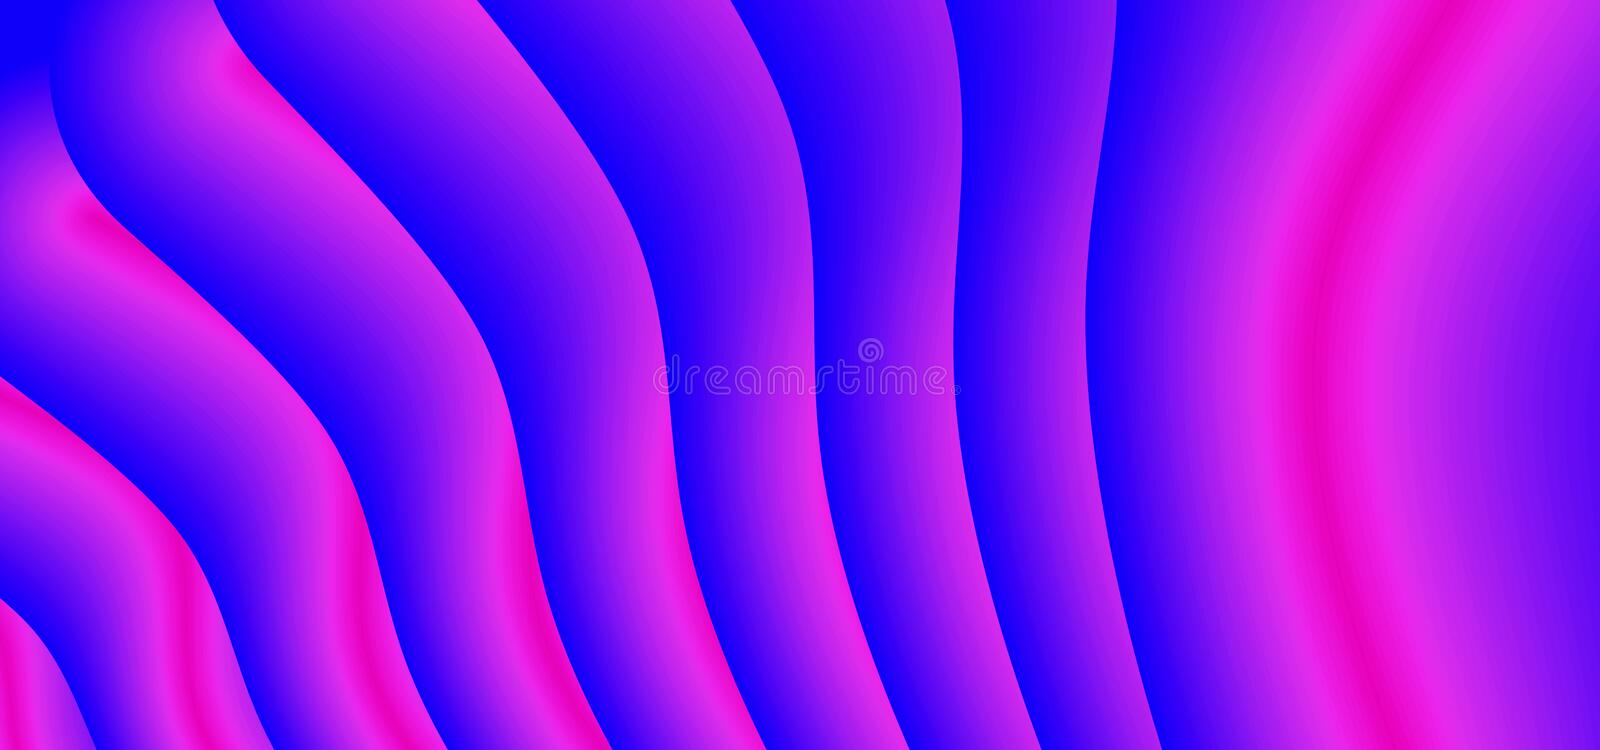 Abstract background with flow gradient modern purple and blue design vector illustration eps 10. Decorative flow wave artistic. Design, dynamic, fluid, shape royalty free illustration